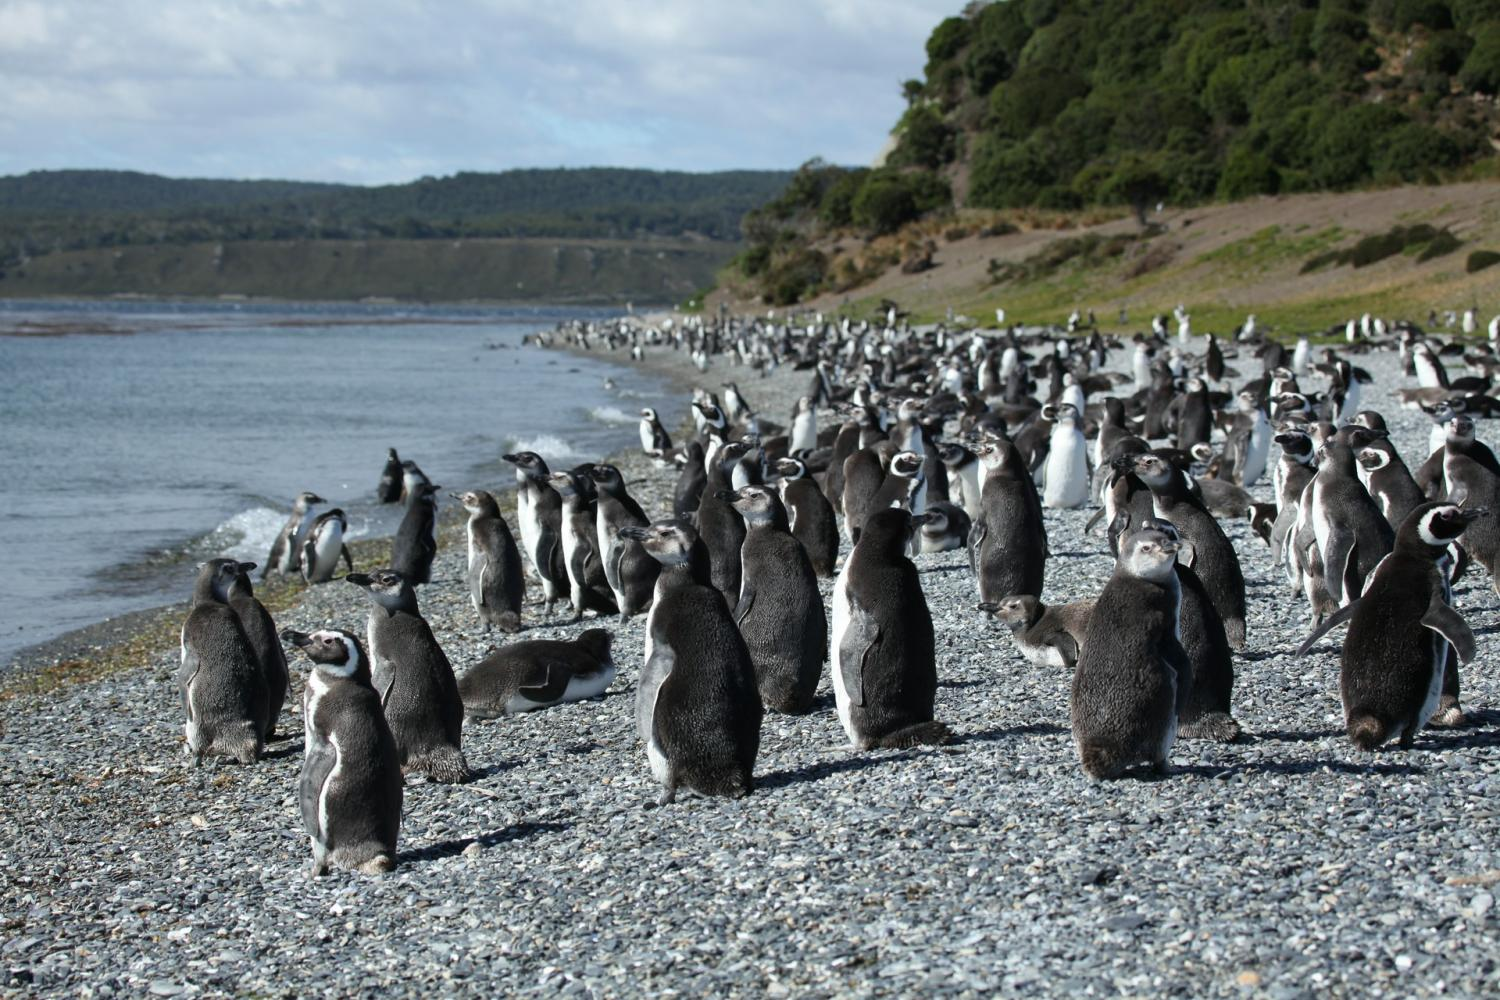 Walk with the penguins on Martillo Island